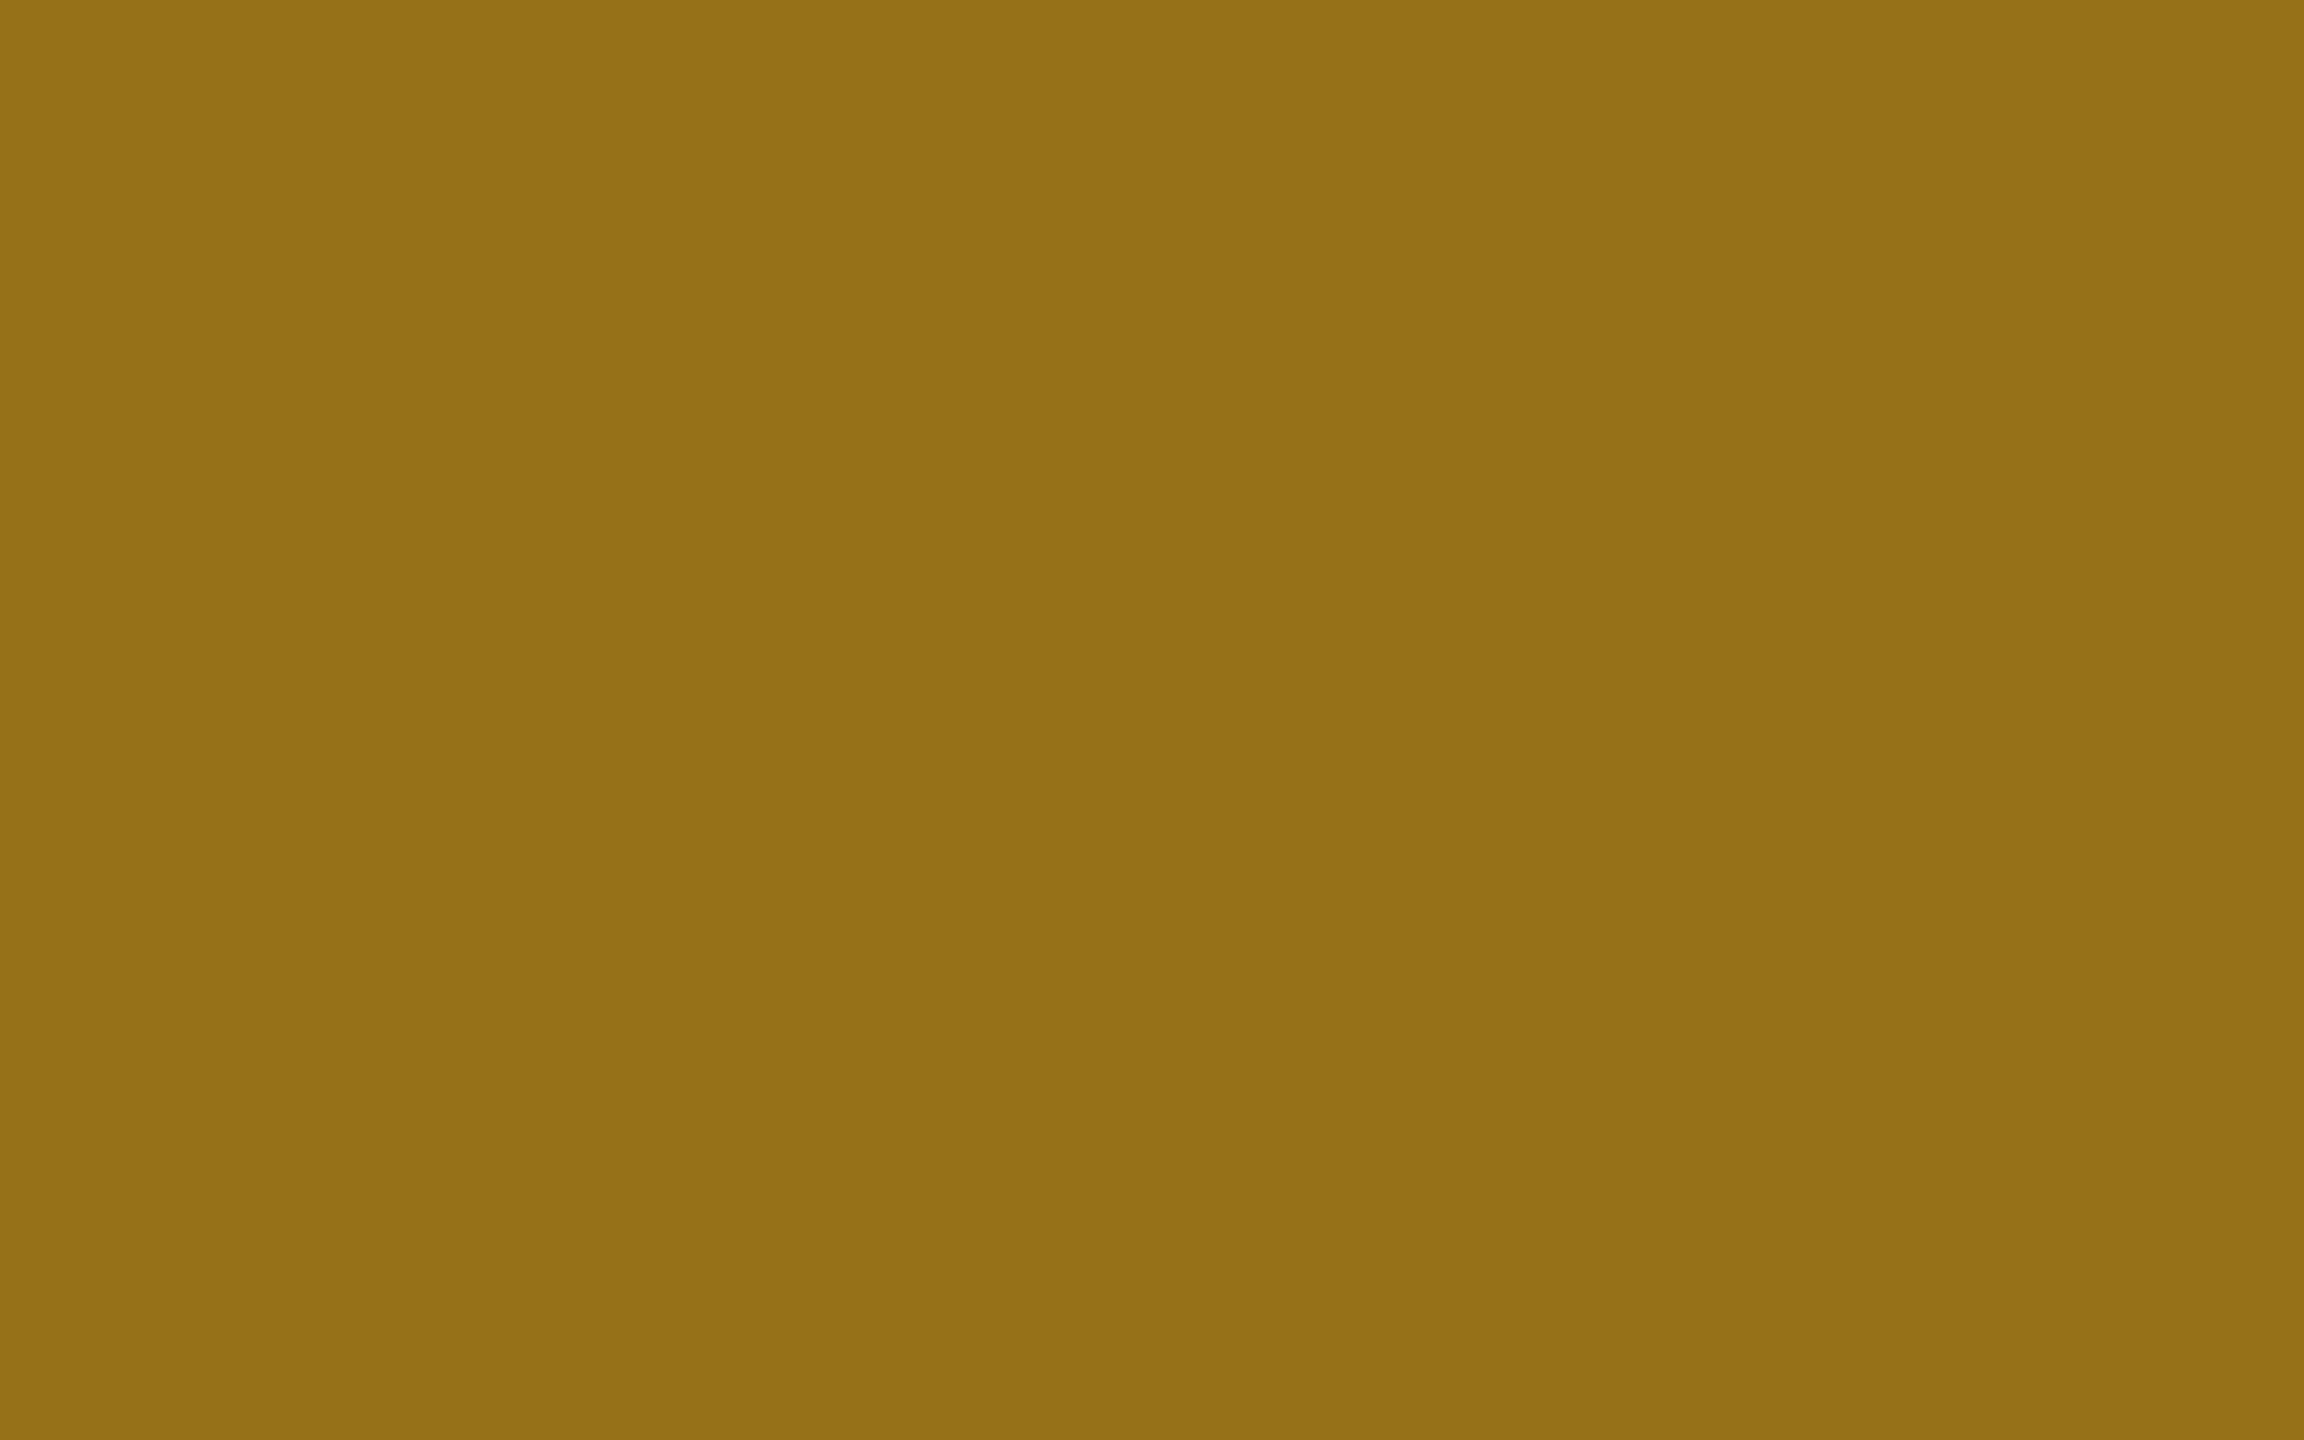 2304x1440 Mode Beige Solid Color Background